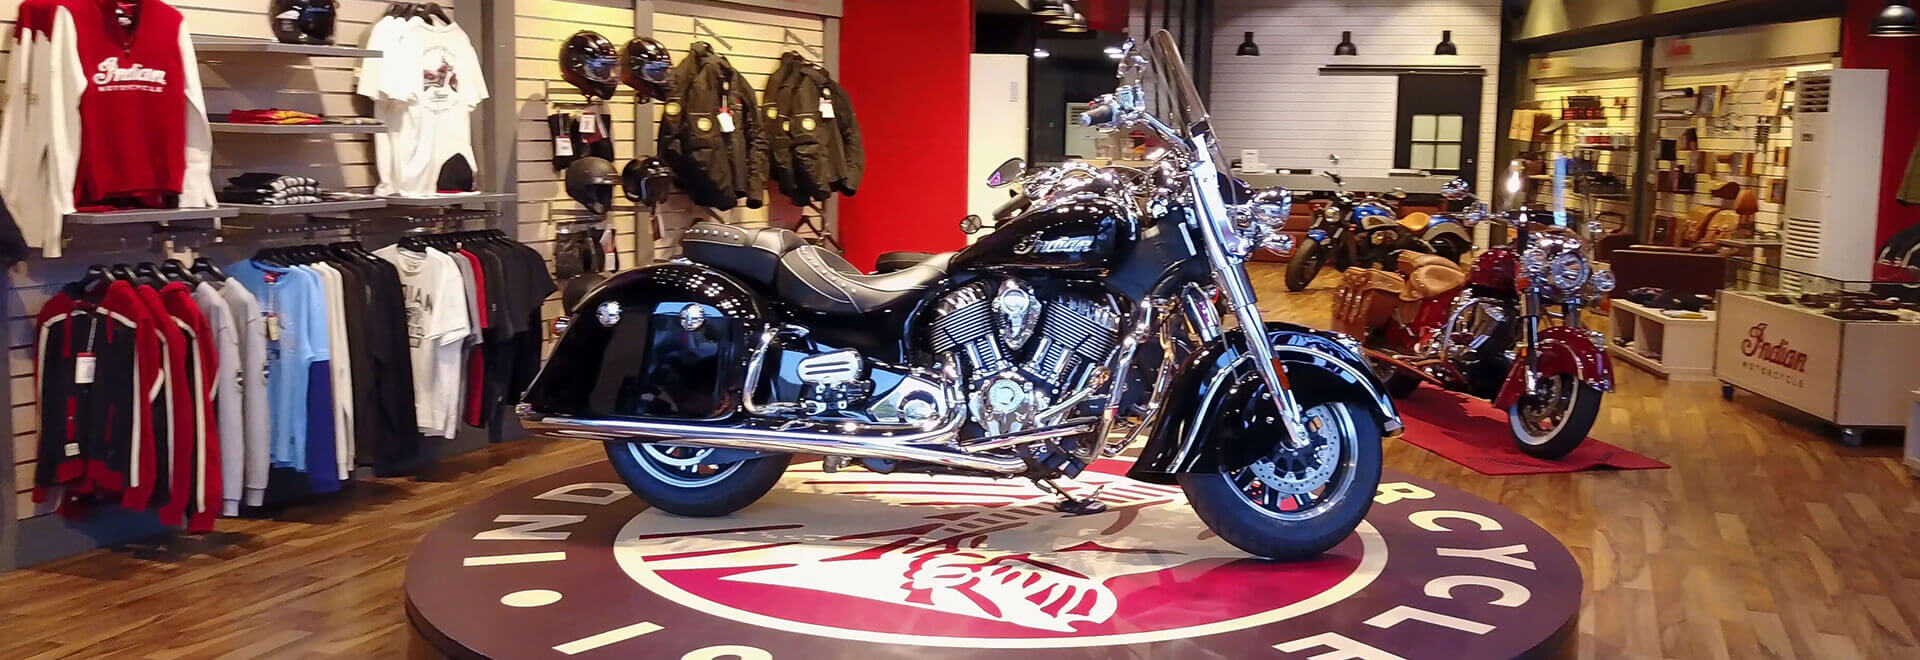 Indian Motorcycle Showroom - Athens